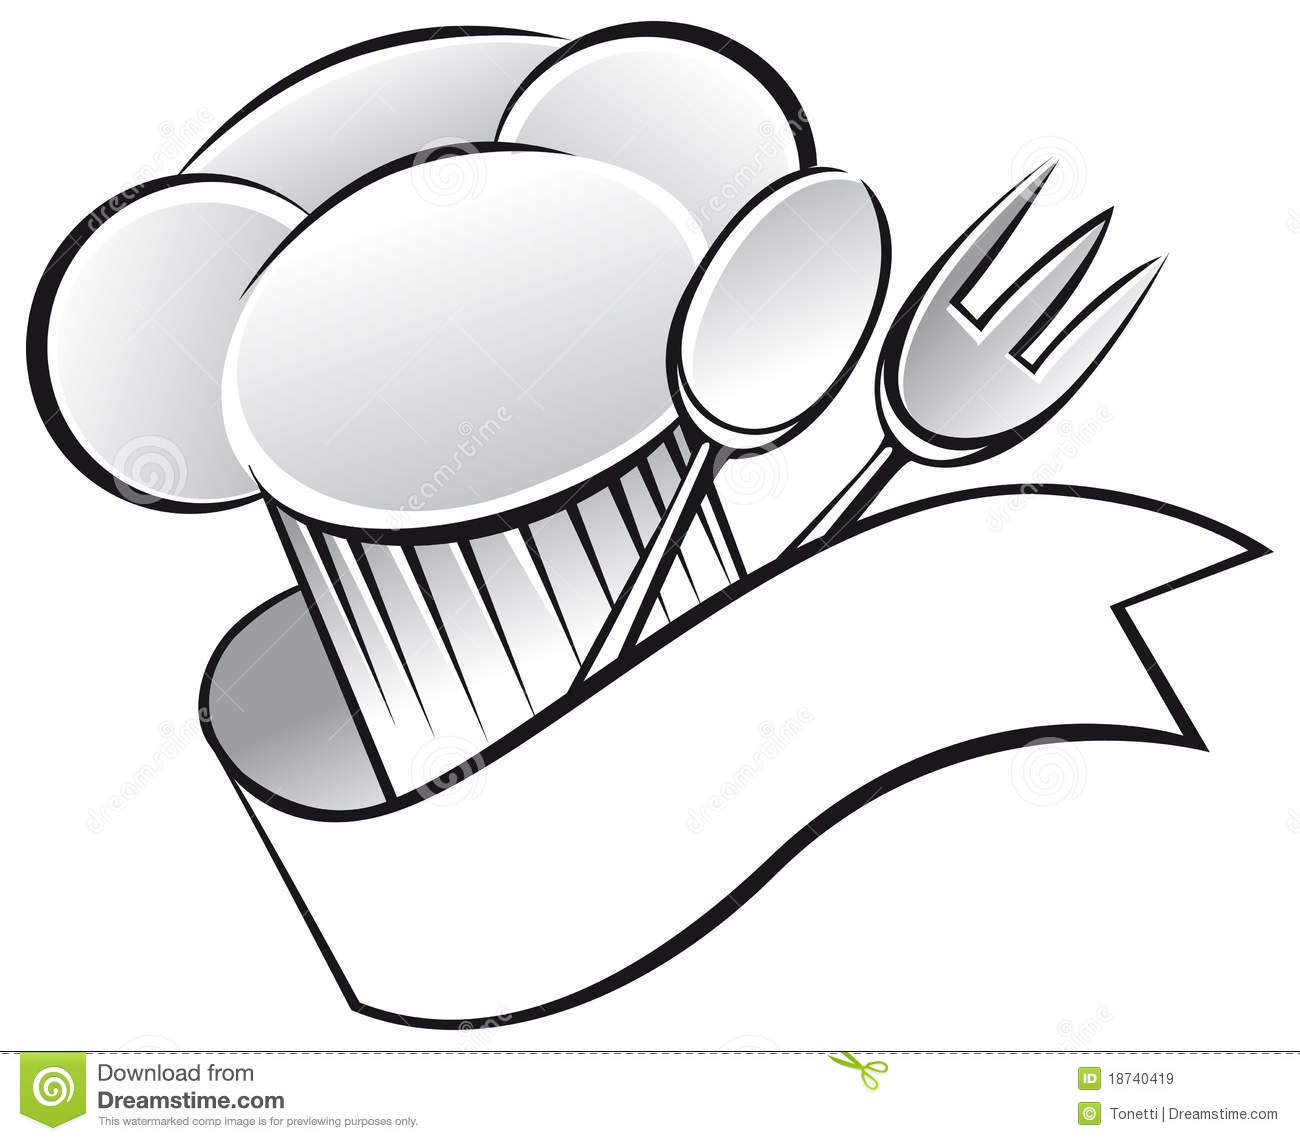 Utensils And Chef Hat Clipart-Utensils And Chef Hat Clipart-16